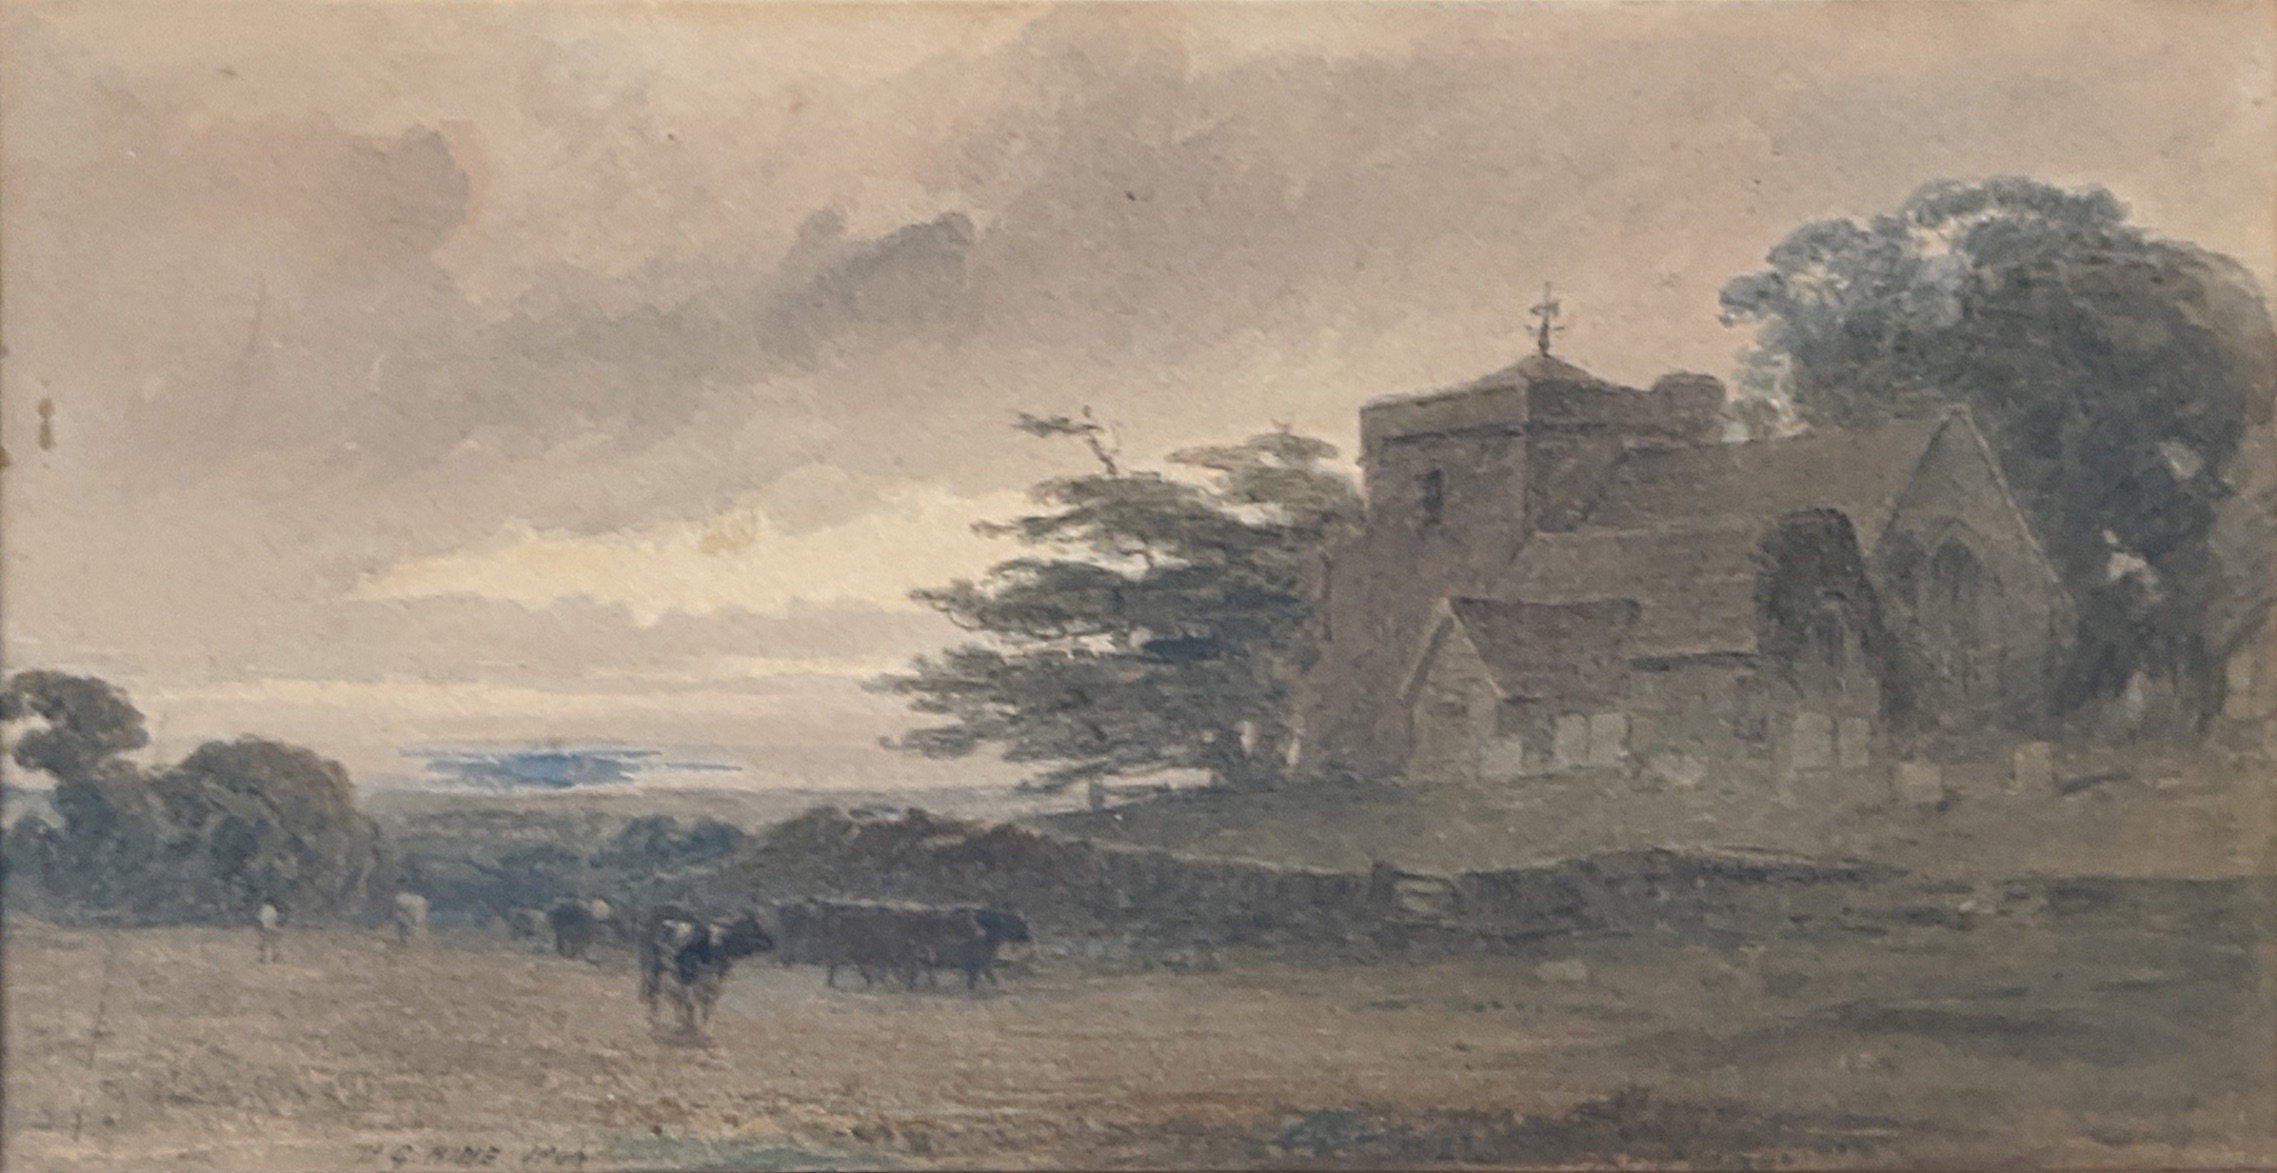 Henry George Hine (British, 1811-1895), A Sussex Church Scene, watercolour, siged lower left H.G.